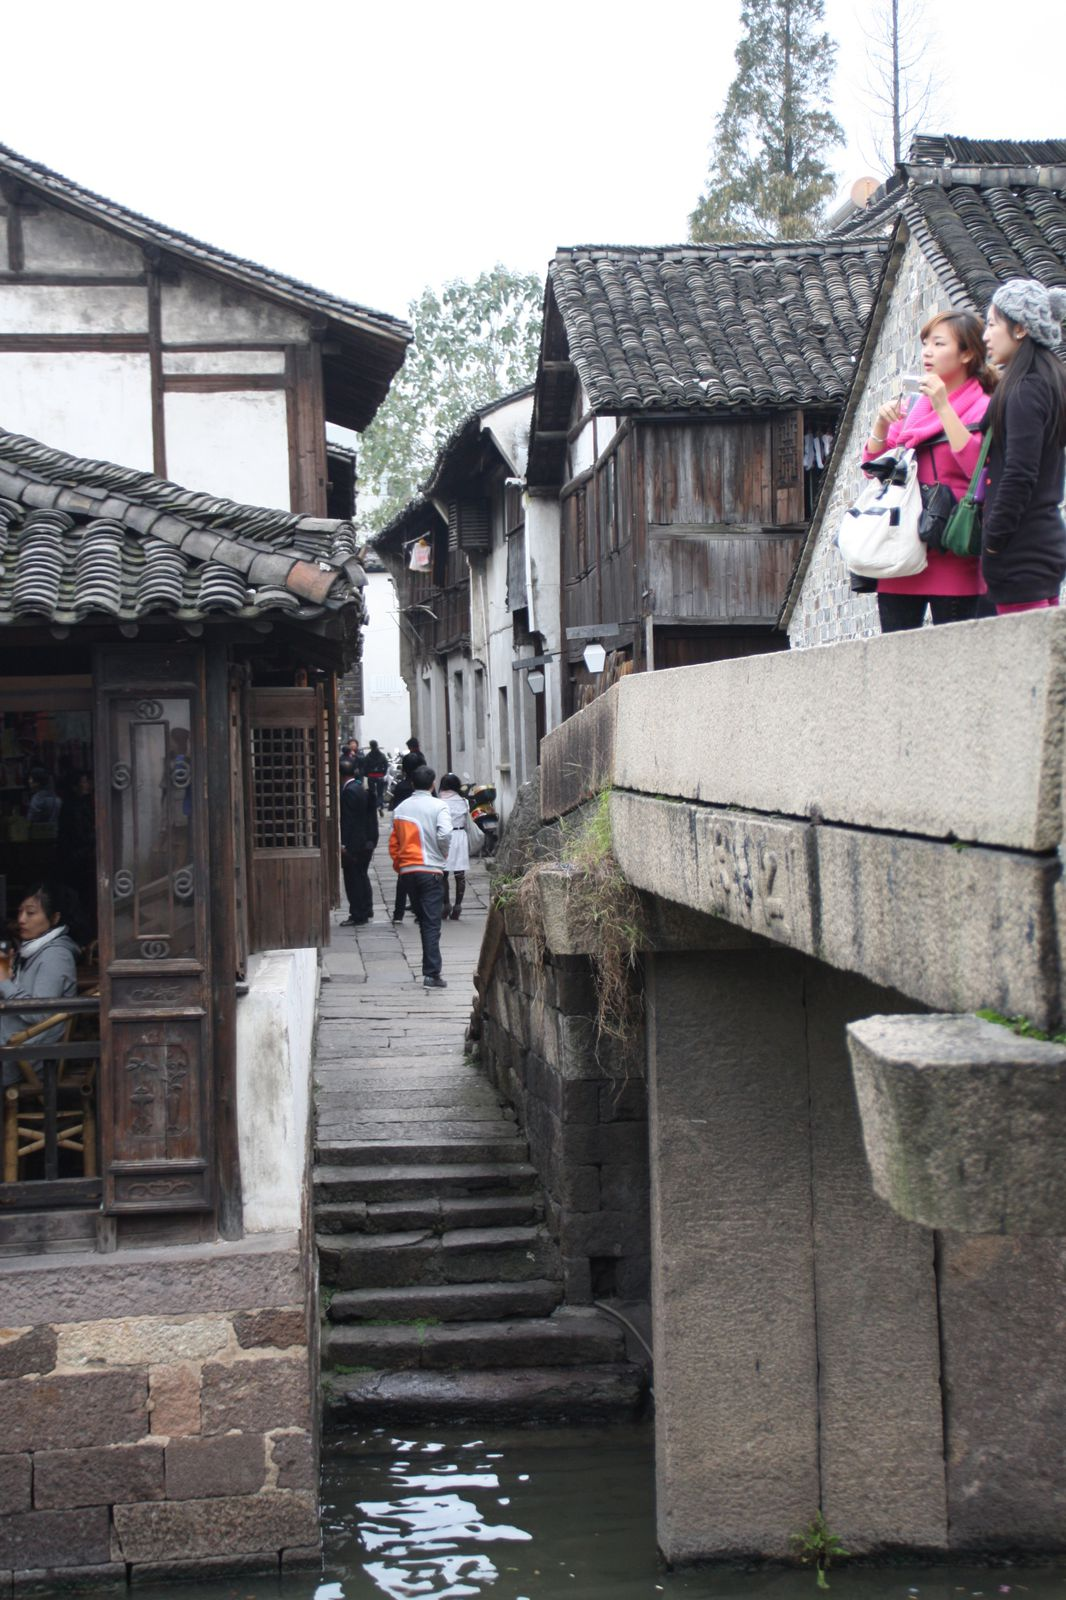 ALBUM - CHINE 2010 : WUZHEN